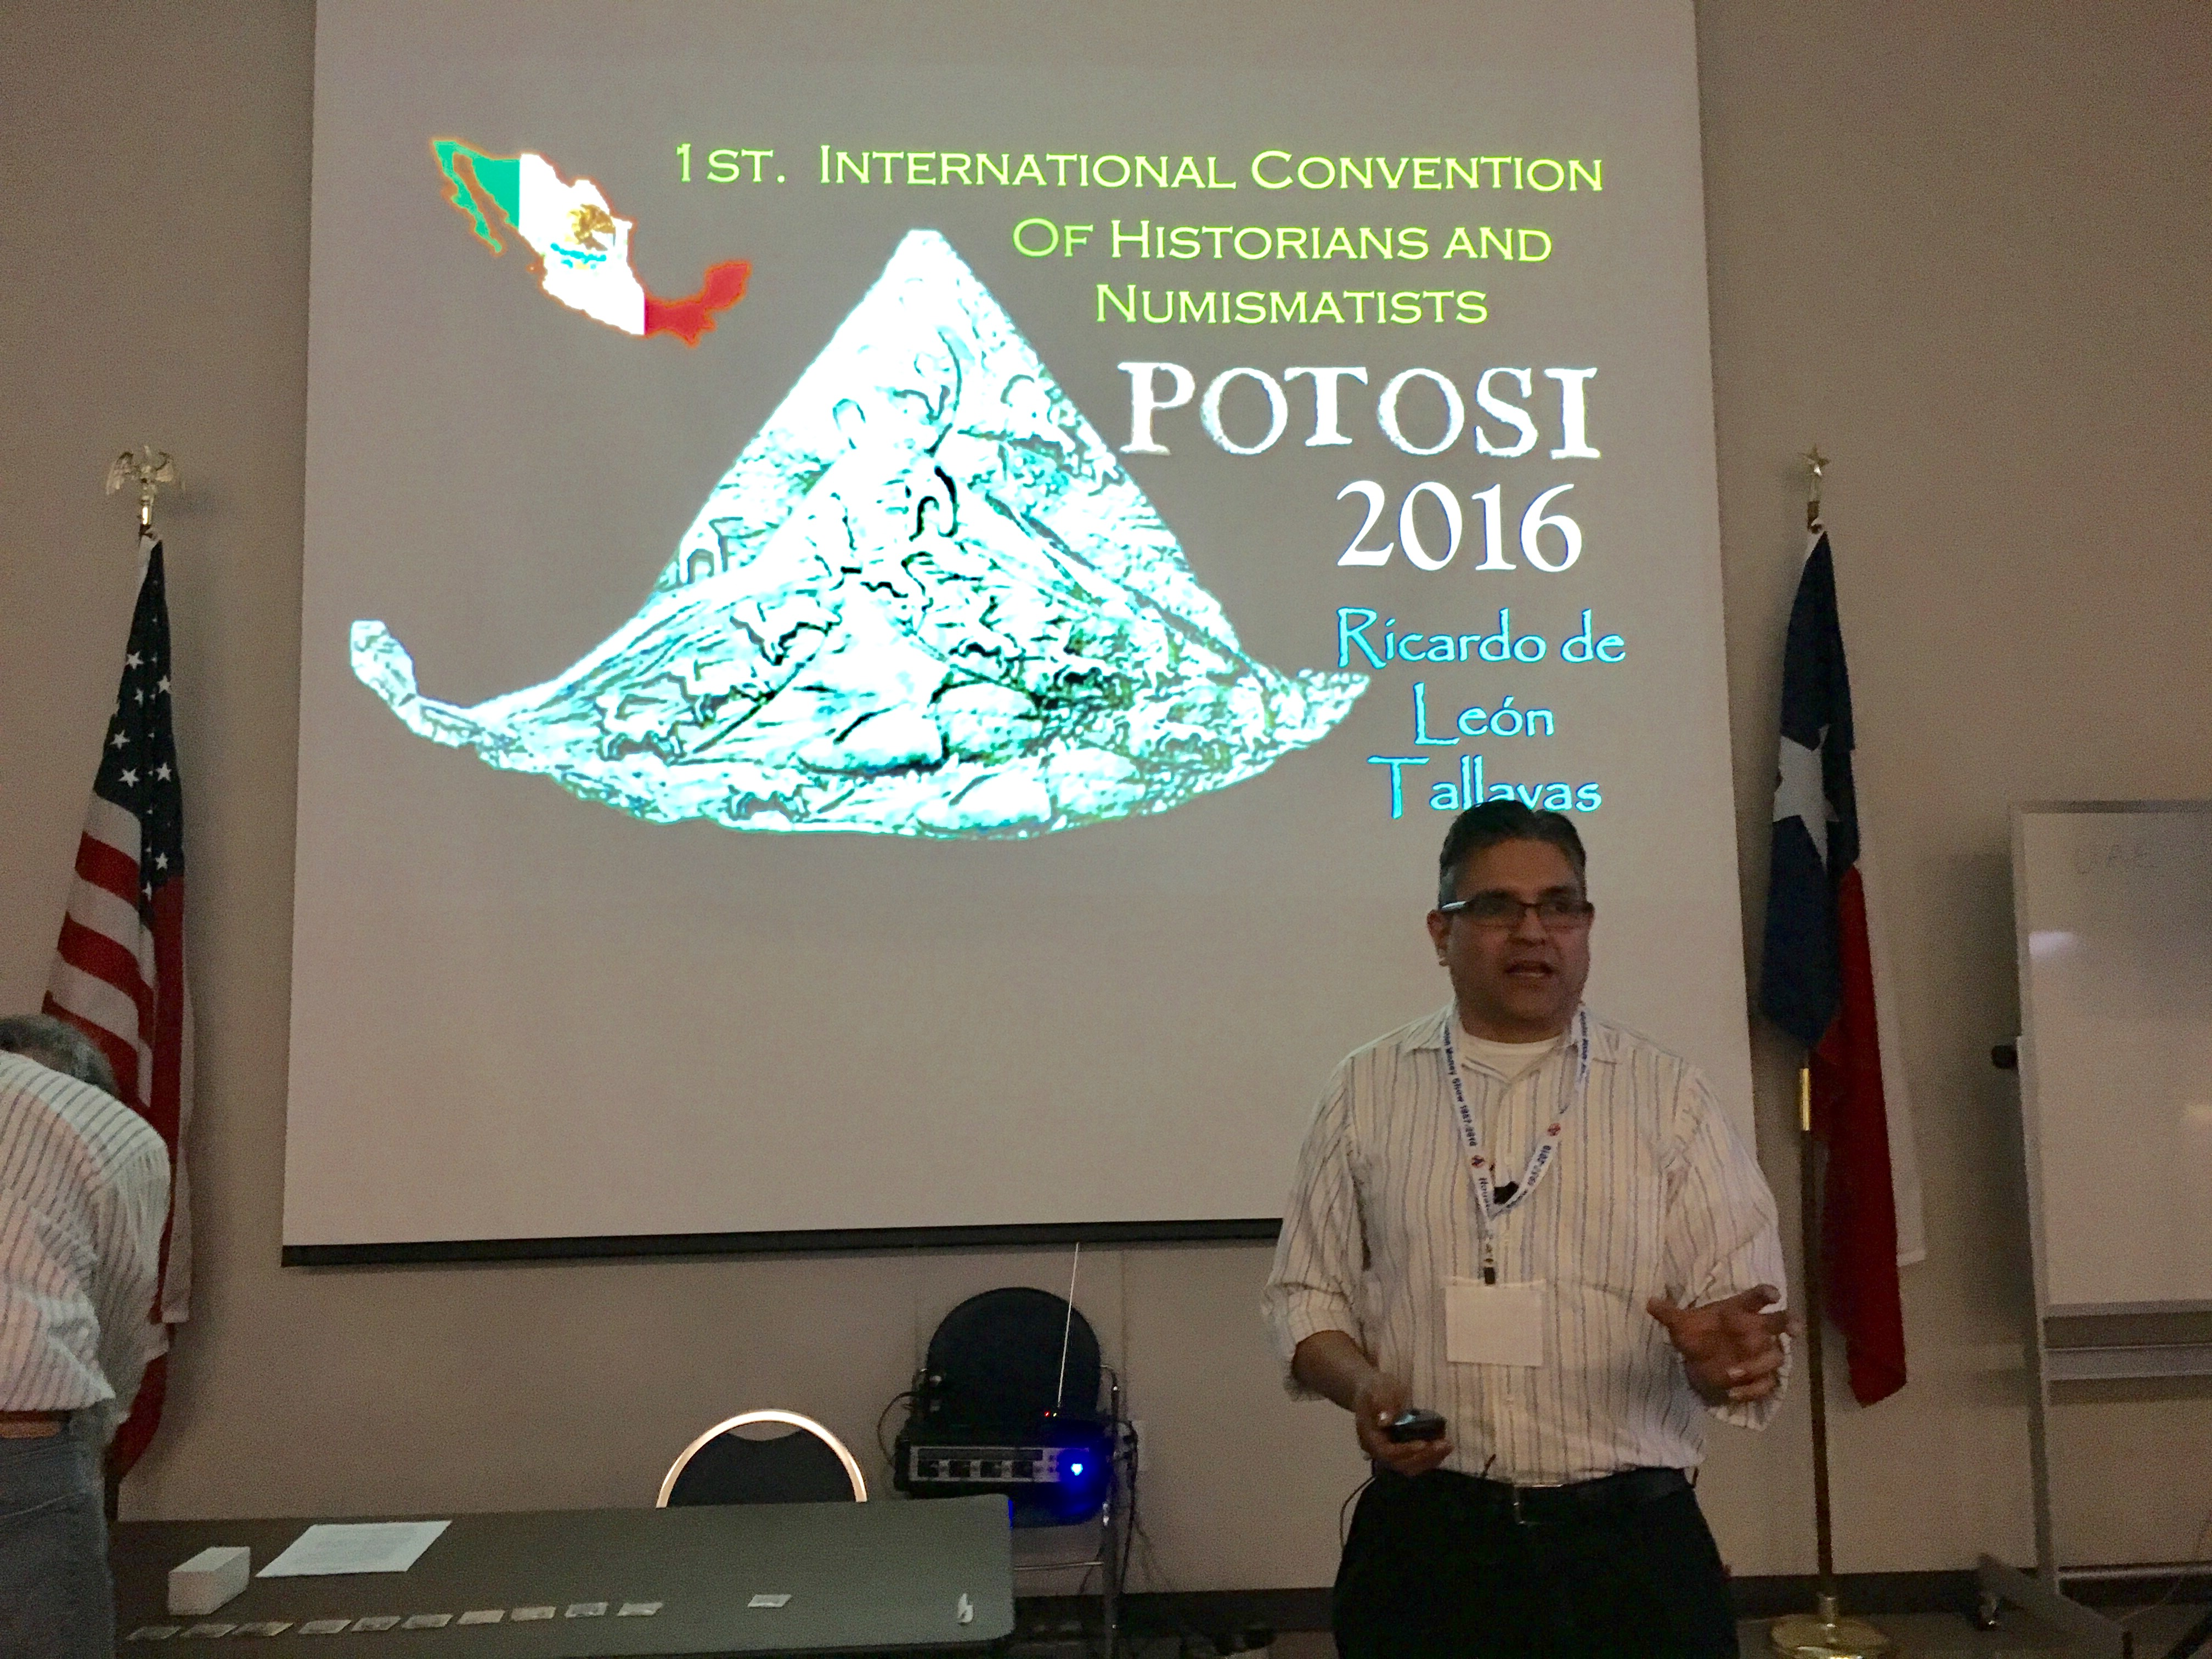 The GHCC's Ricardo de Leon Tallavas gives a presentation about his experiences at the 1st Intl. Convention of Historians & Numismatists at the march 2017 club meeting